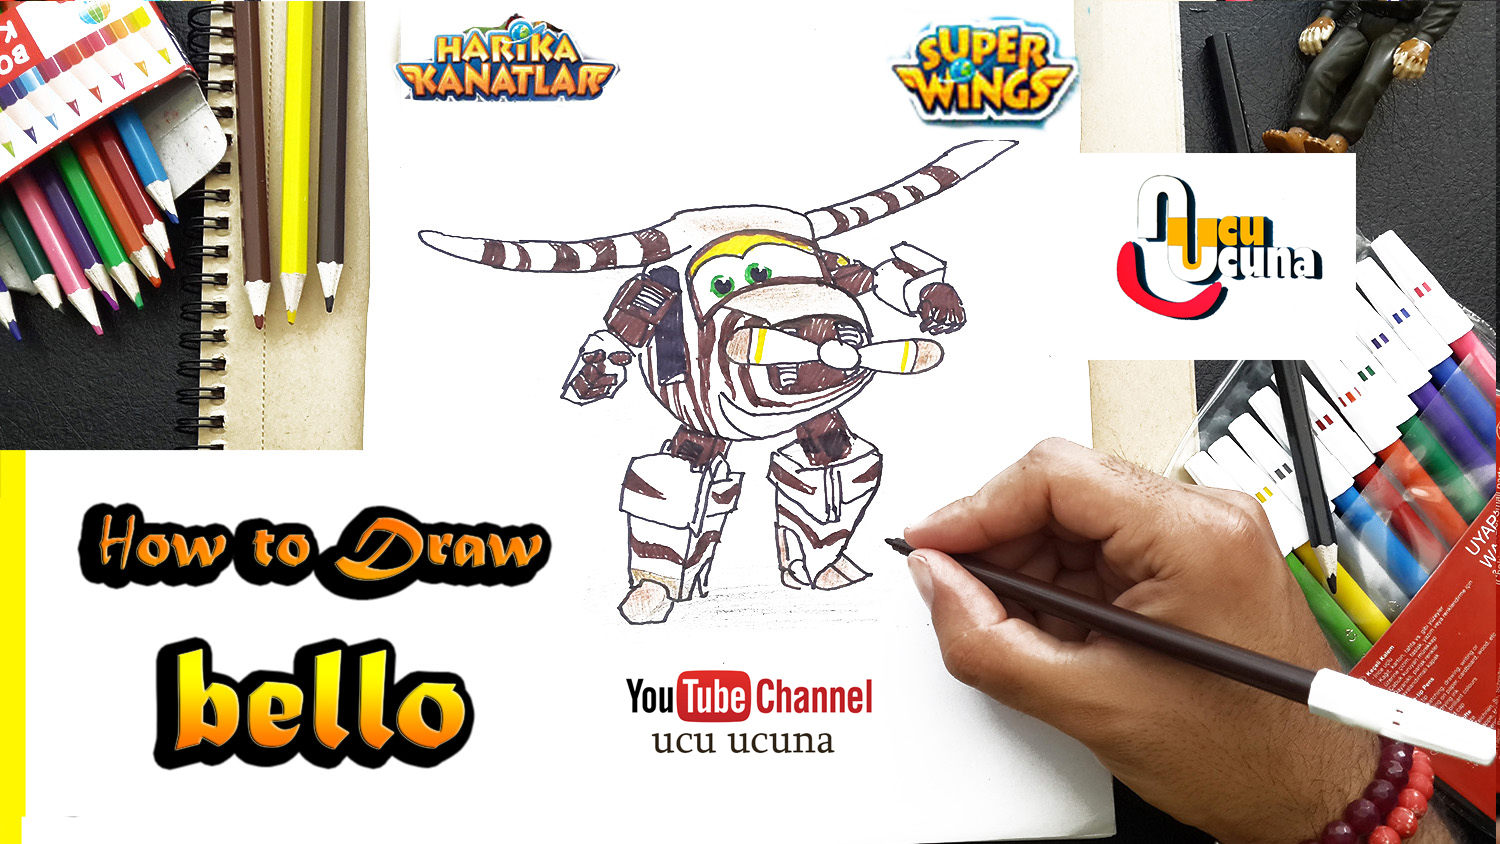 How to draw superwings draw step by step tutorial funny art basic kids draw lets art do if you look tutorial click youtube channel ucu ucuna